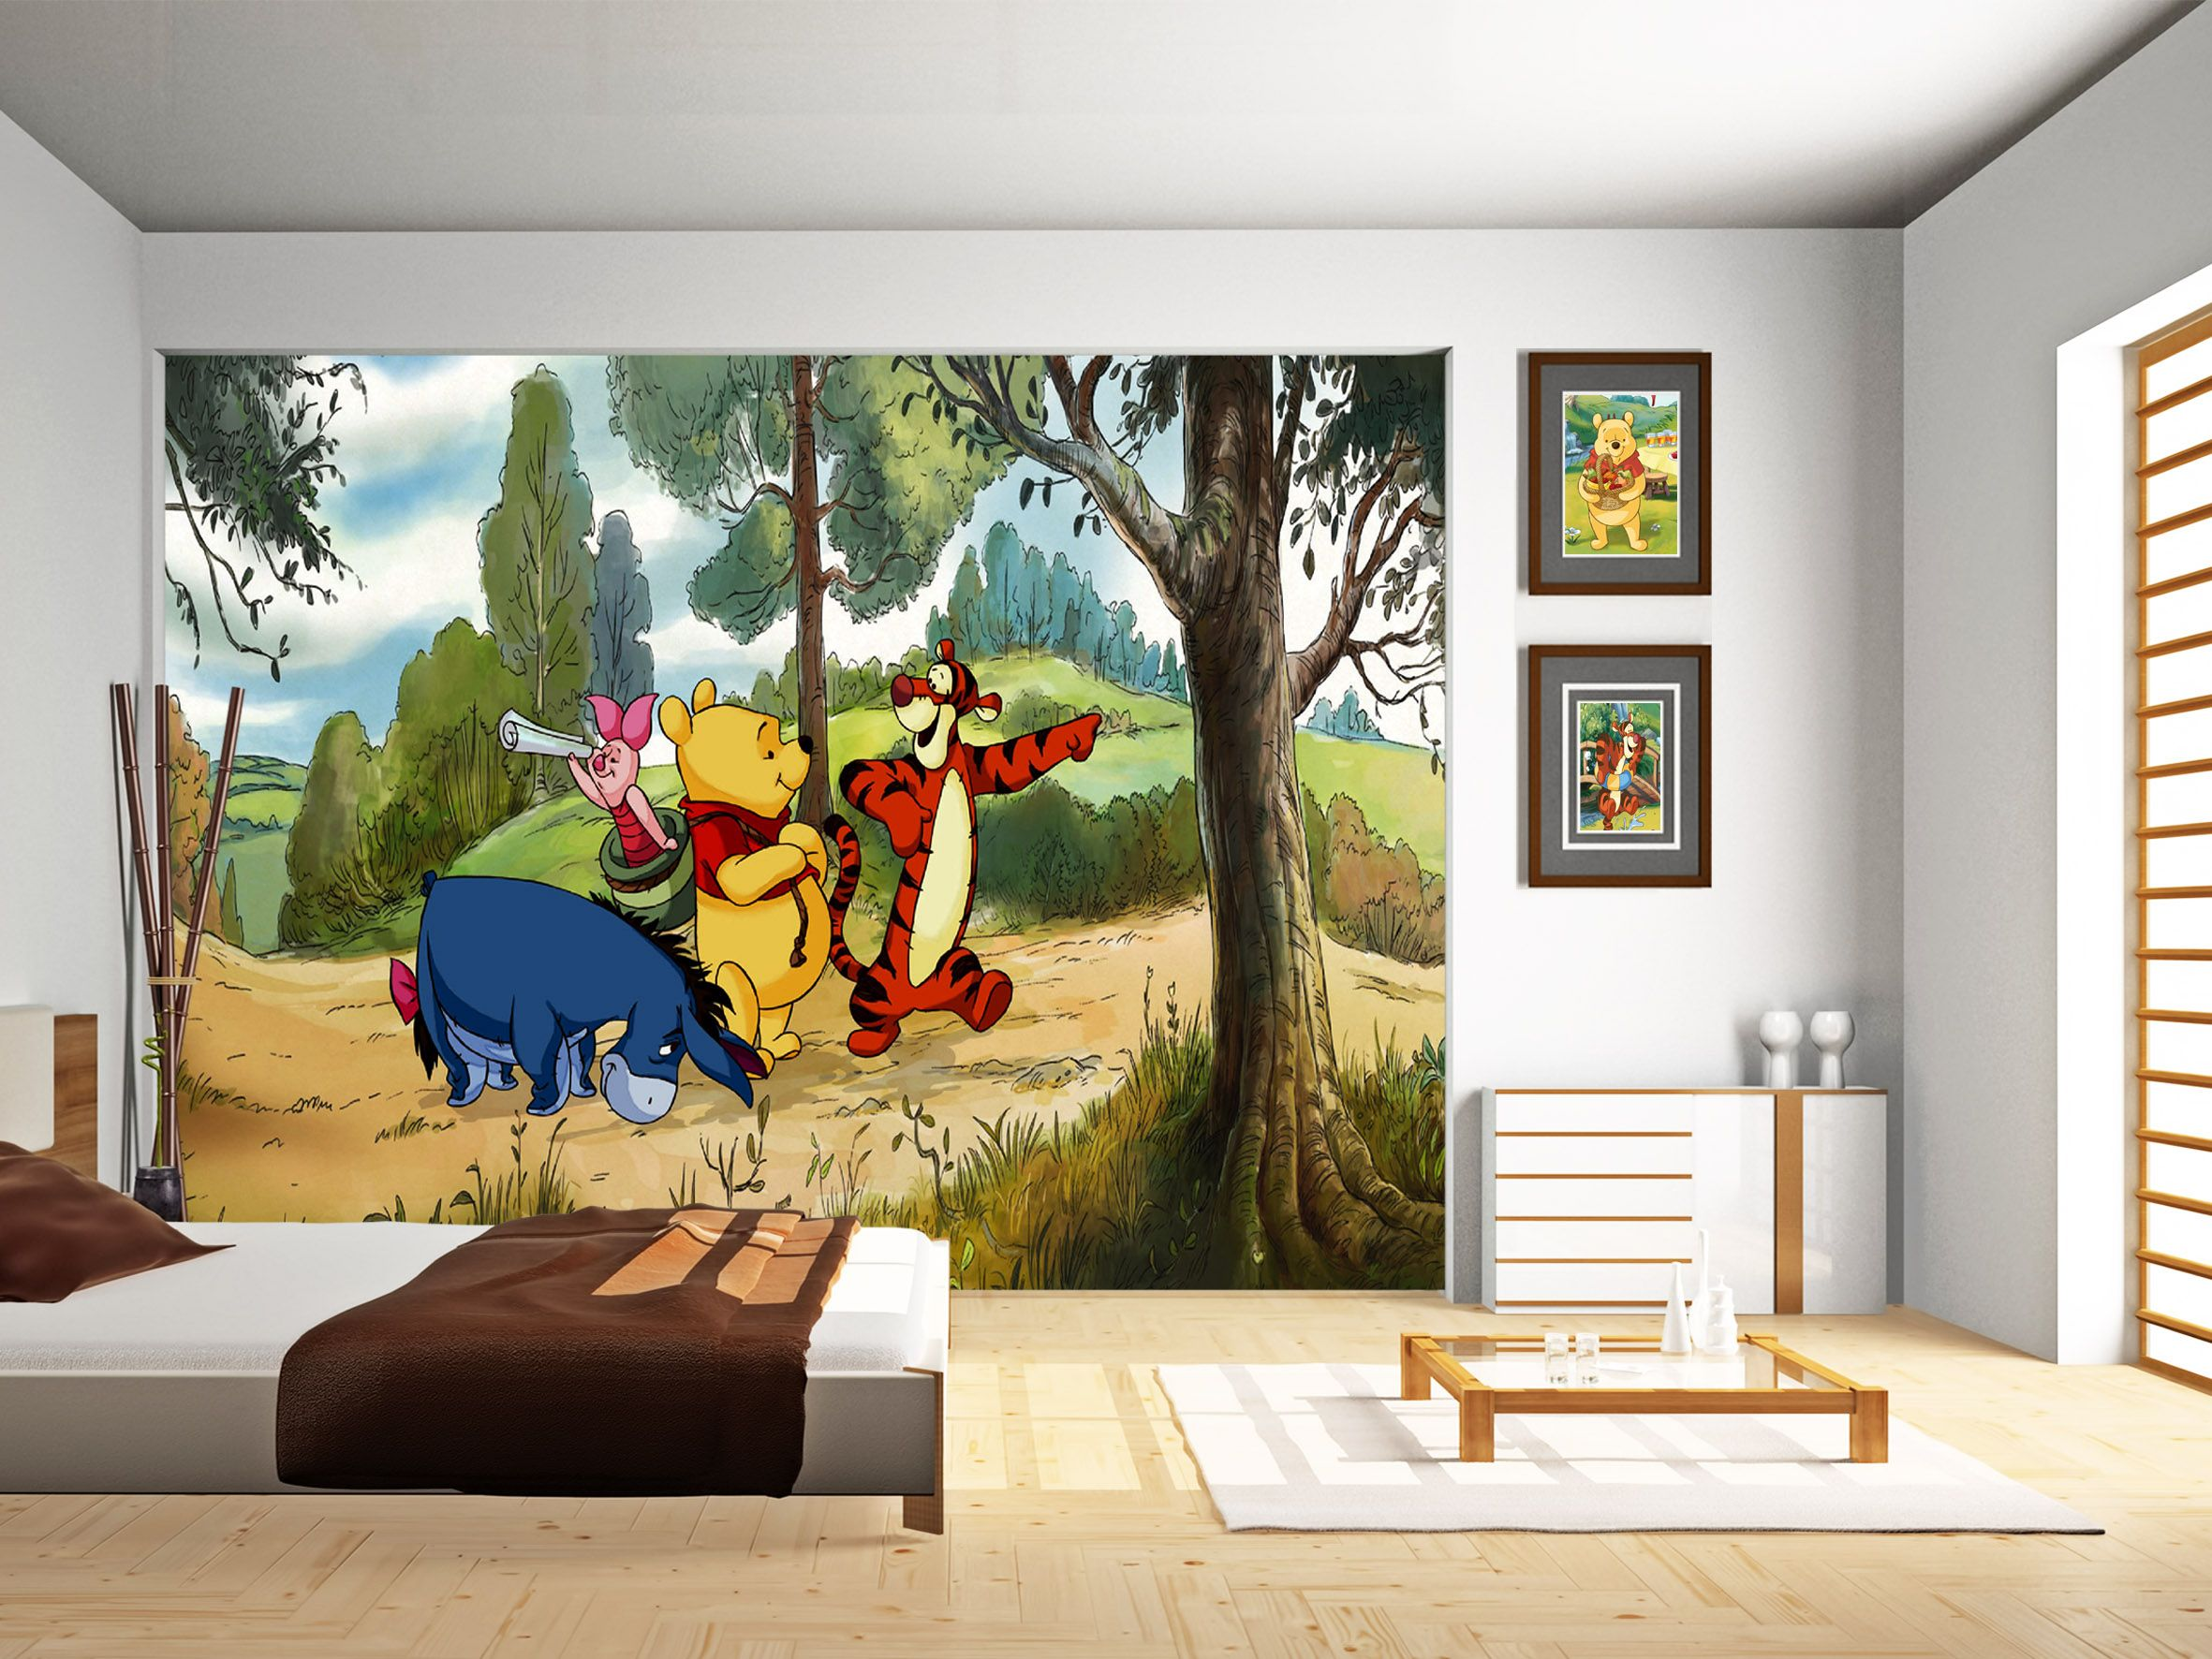 Disney Winnie the Pooh Wallpaper Mural by WallandMore